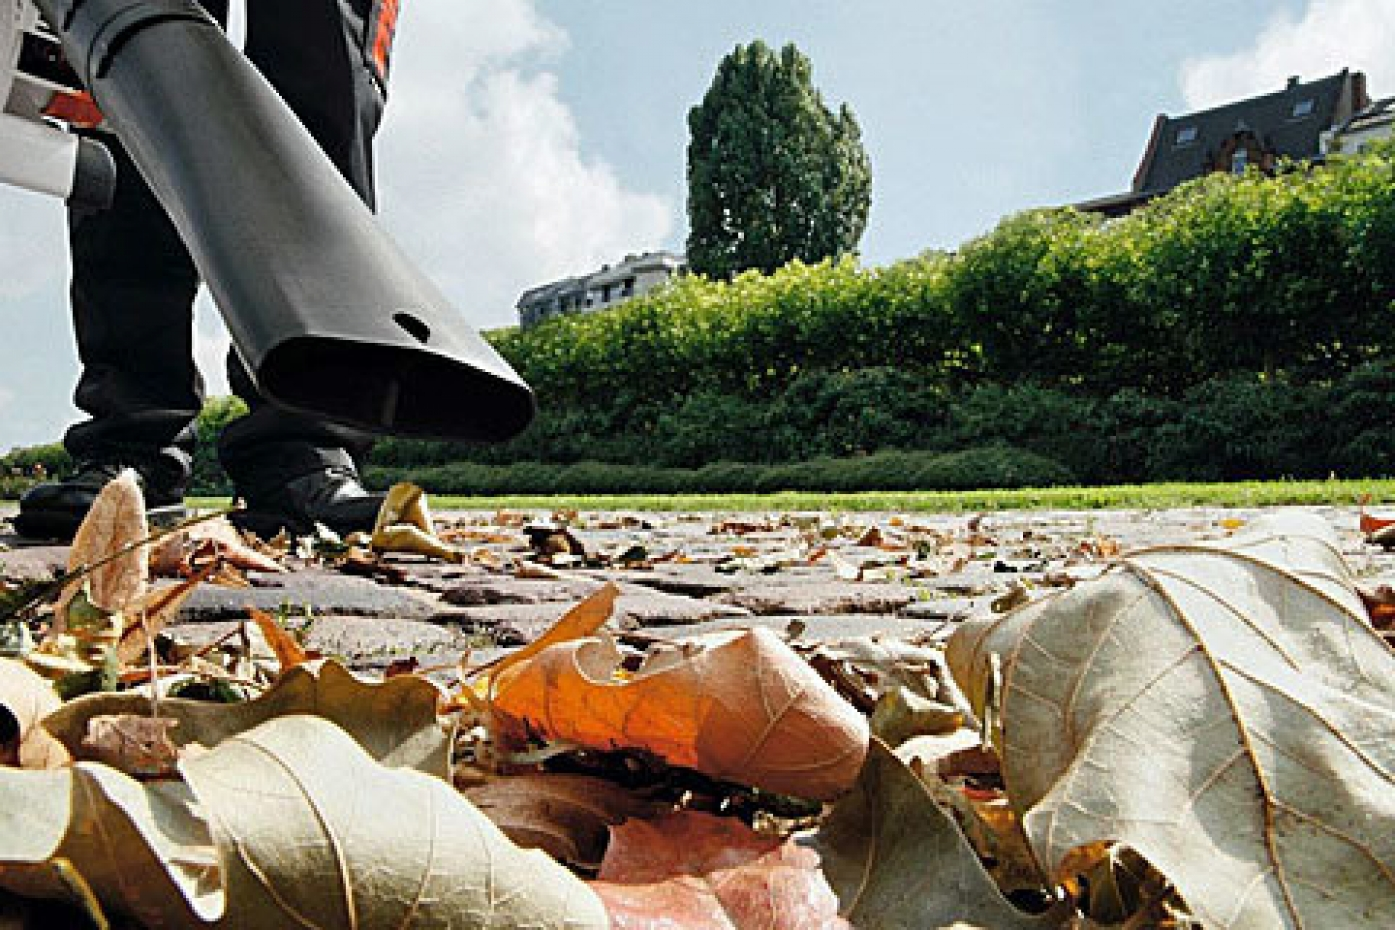 Leaf Collection - Ideal for Autumn months when you want to tidy up those fallen leaves.